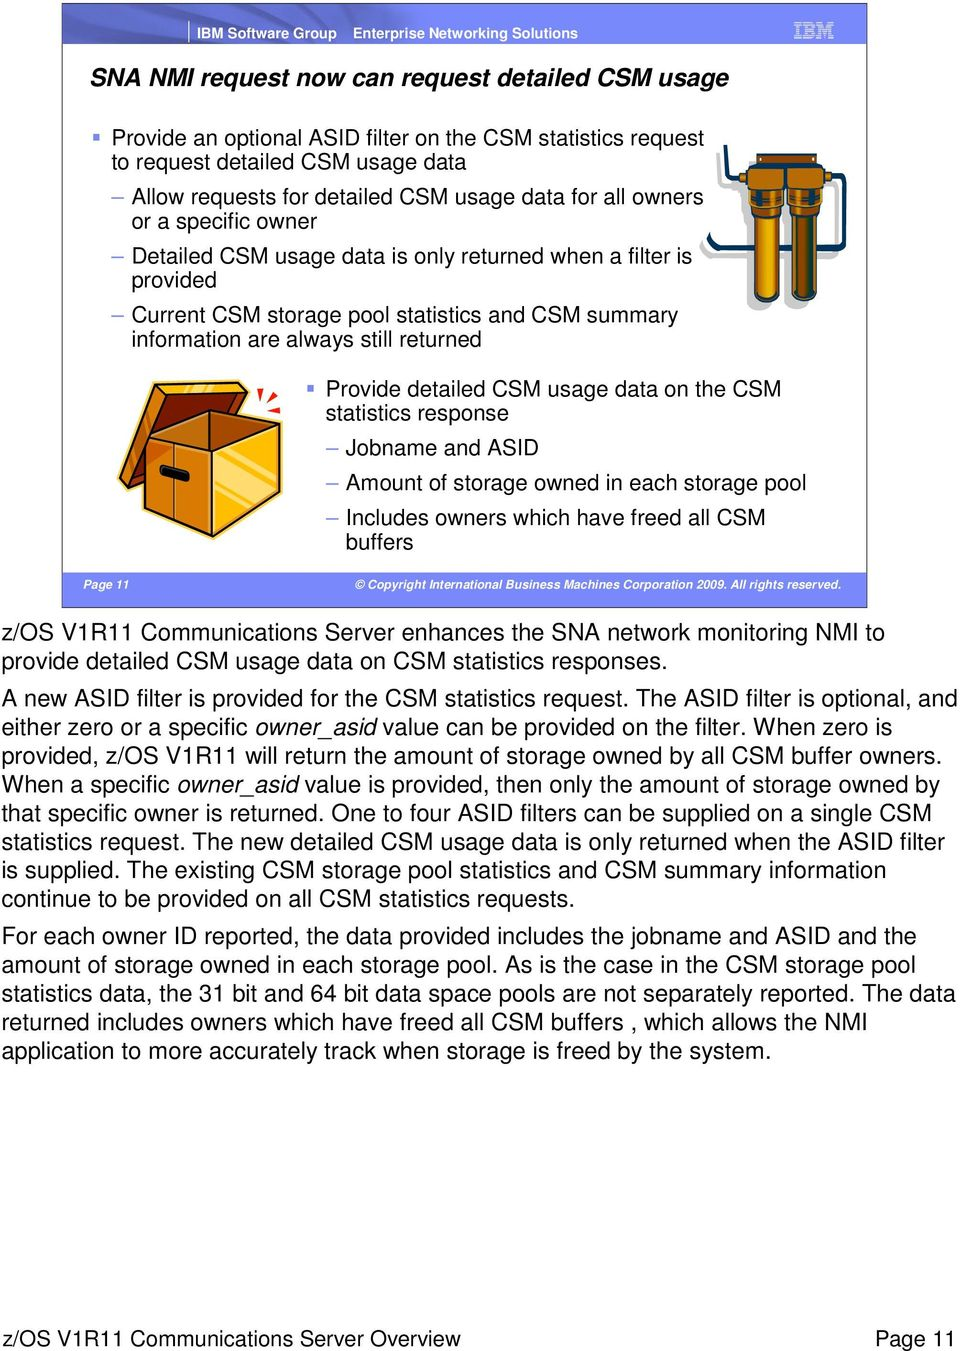 detailed CSM usage data on the CSM statistics response Jobname and ASID Amount of storage owned in each storage pool Includes owners which have freed all CSM buffers Page 11 z/os V1R11 Communications